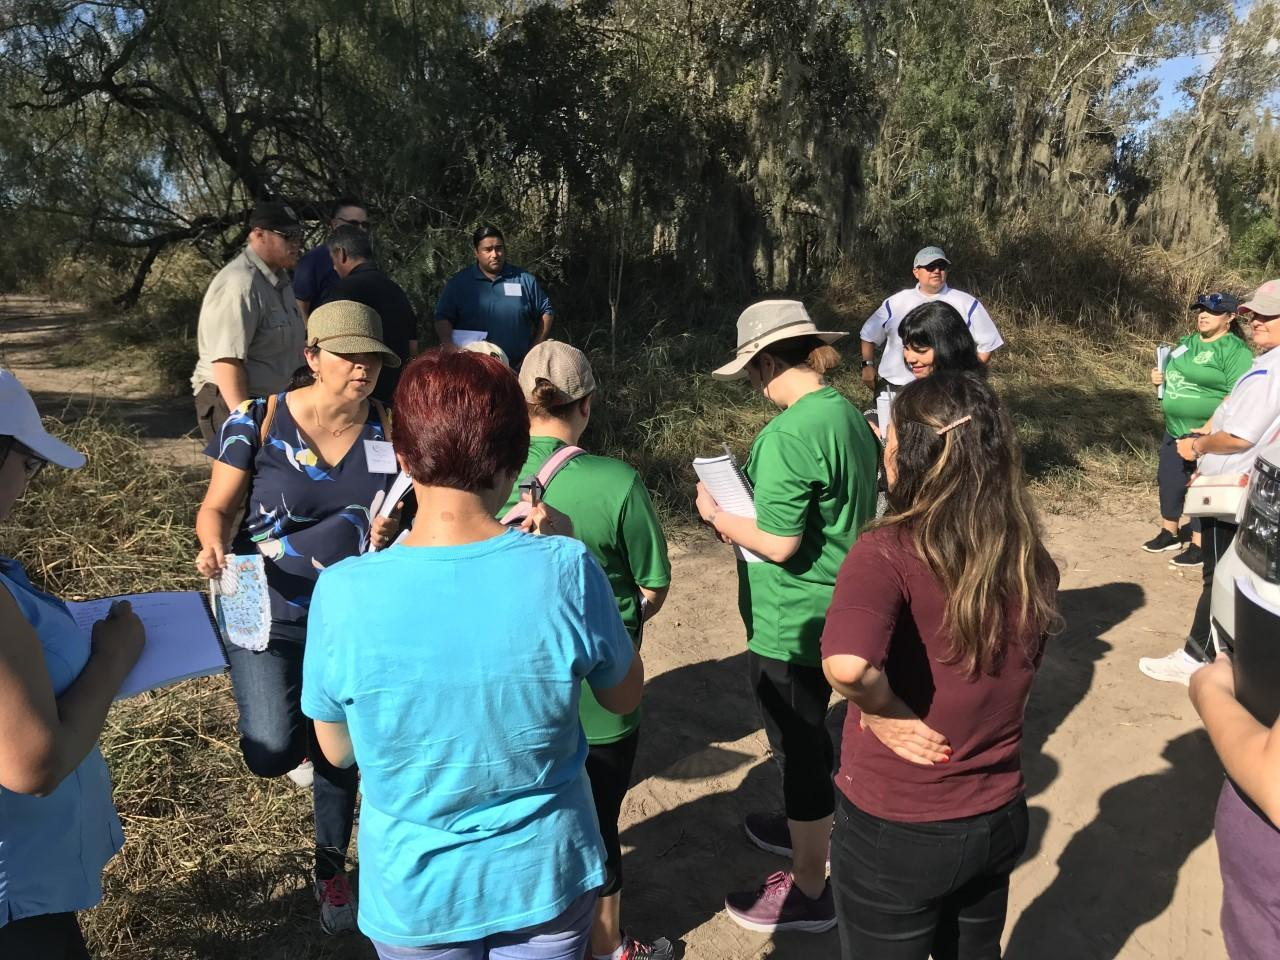 Group hiking on a trail